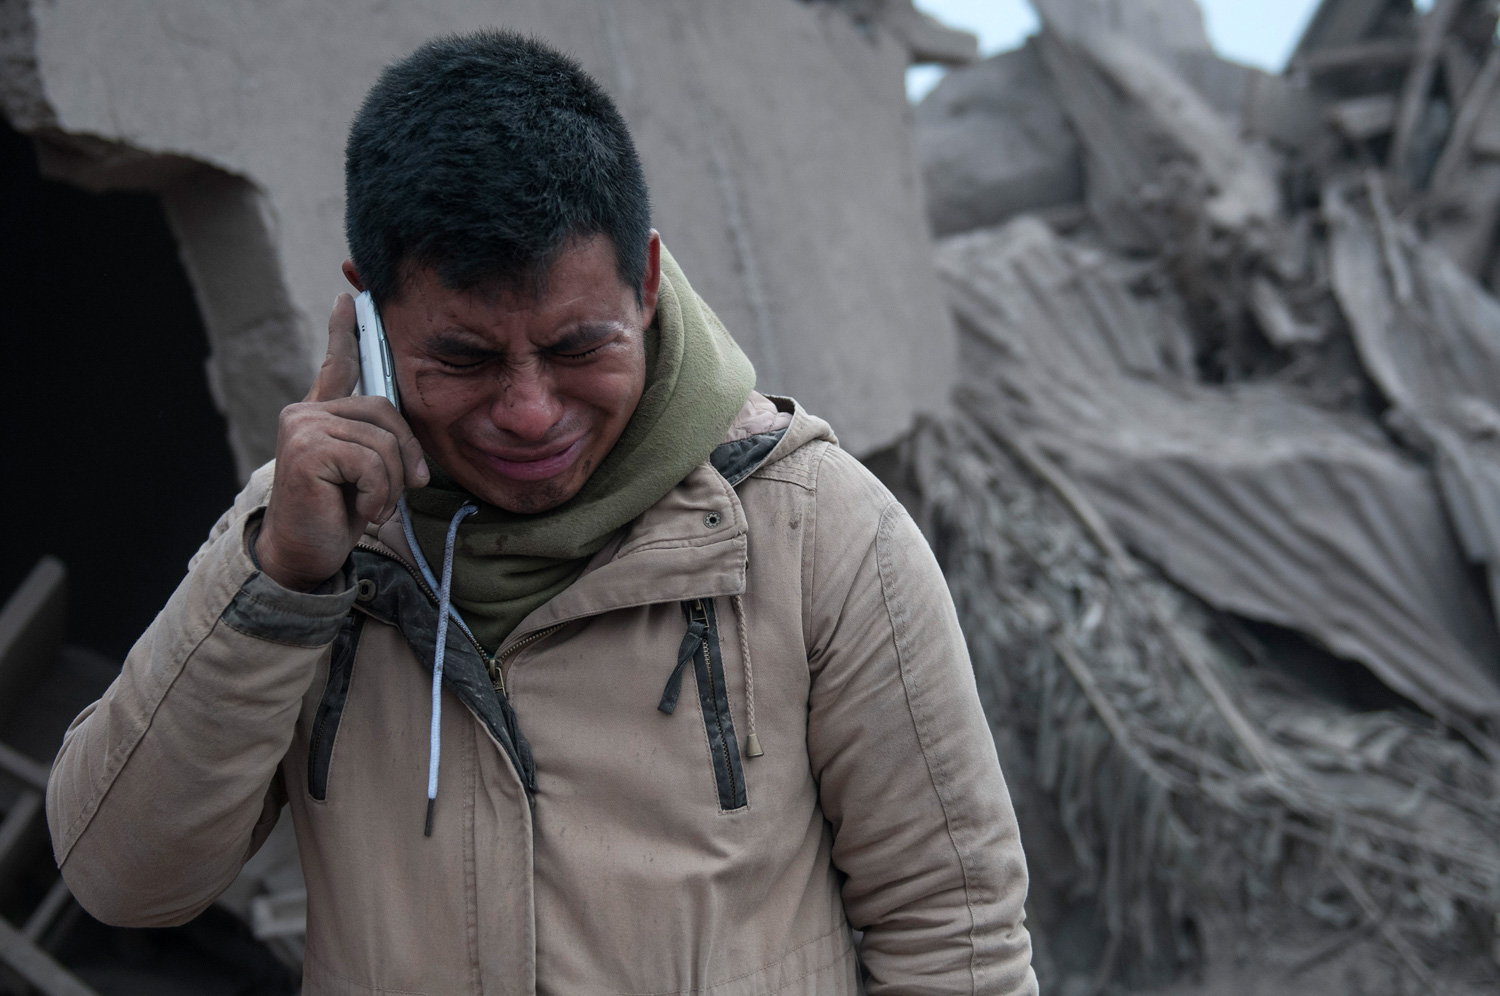 <div class='meta'><div class='origin-logo' data-origin='none'></div><span class='caption-text' data-credit='Oliver de Ros/AP Photo'>Boris Rodriguez, 24, who is searching for his wife, cries after seeing the condition of his neighborhood, destroyed by the erupting Volcan de Fuego in Guatemala, Monday, June 4.</span></div>